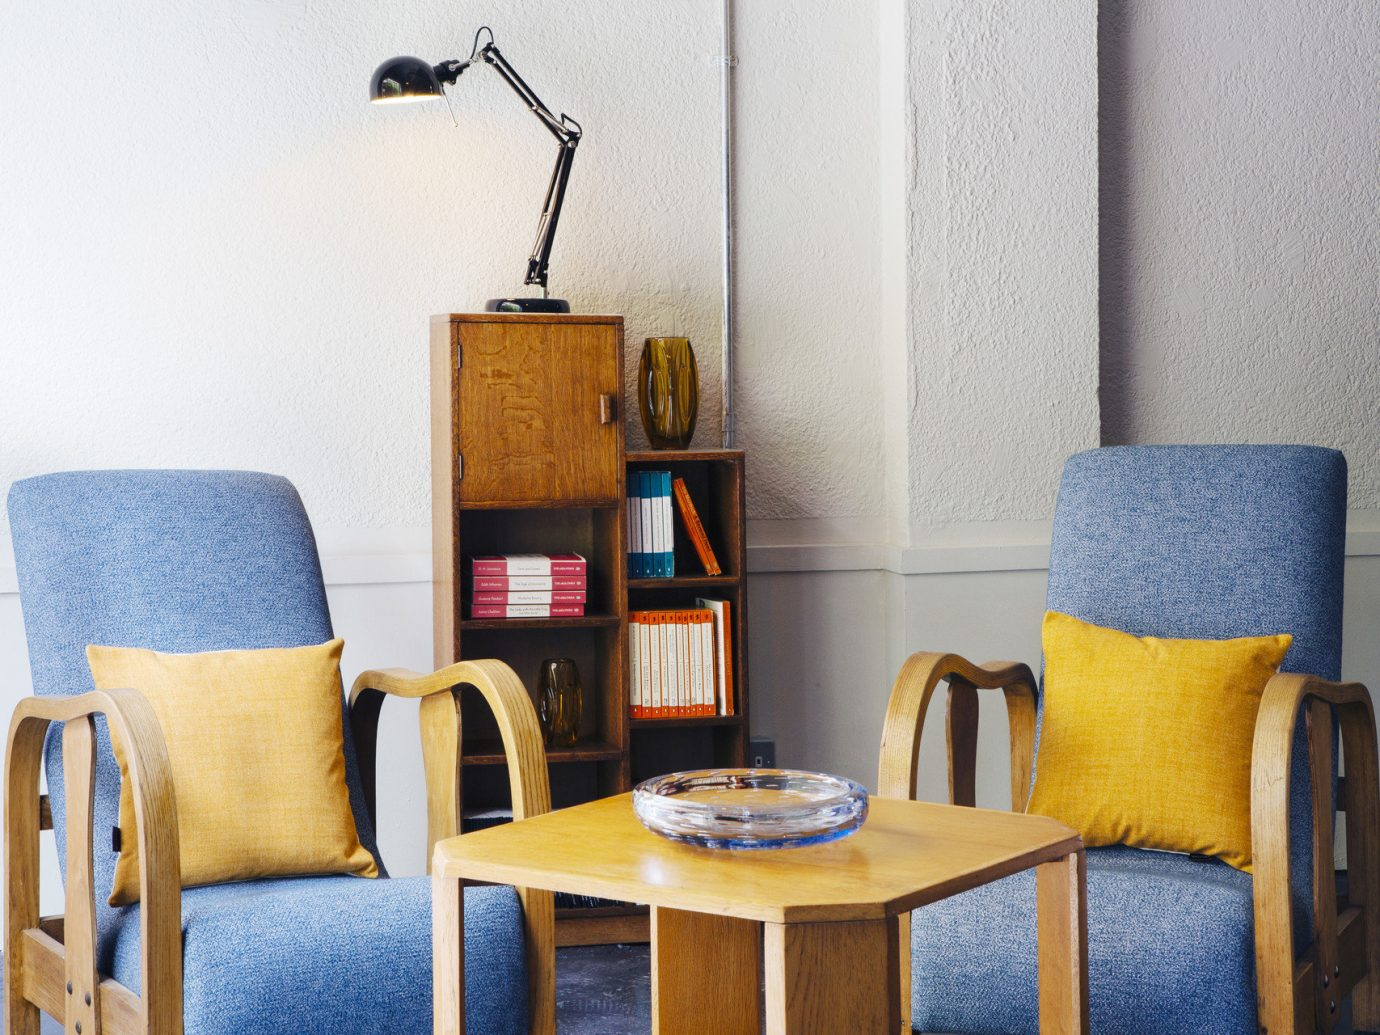 charming cozy Hotels living area Lounge lounge chairs Rustic Solo Travel wall color indoor blue room chair yellow living room dining room furniture home interior design Design window covering apartment cottage